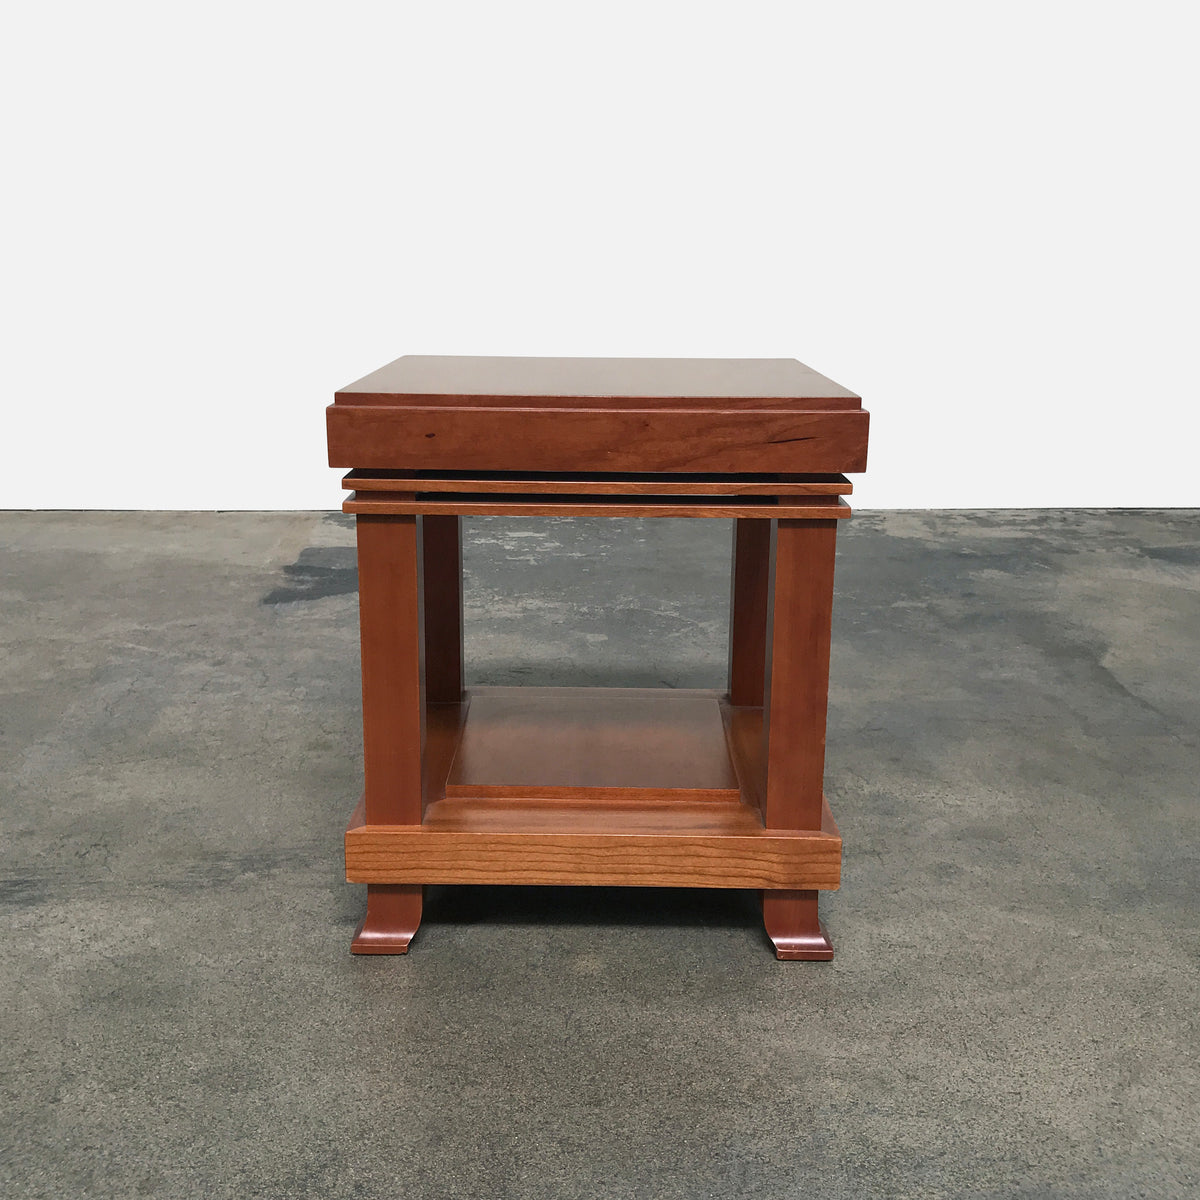 Cassina 610 Robie 2 Side Table / Stool by Frank Lloyd Wright